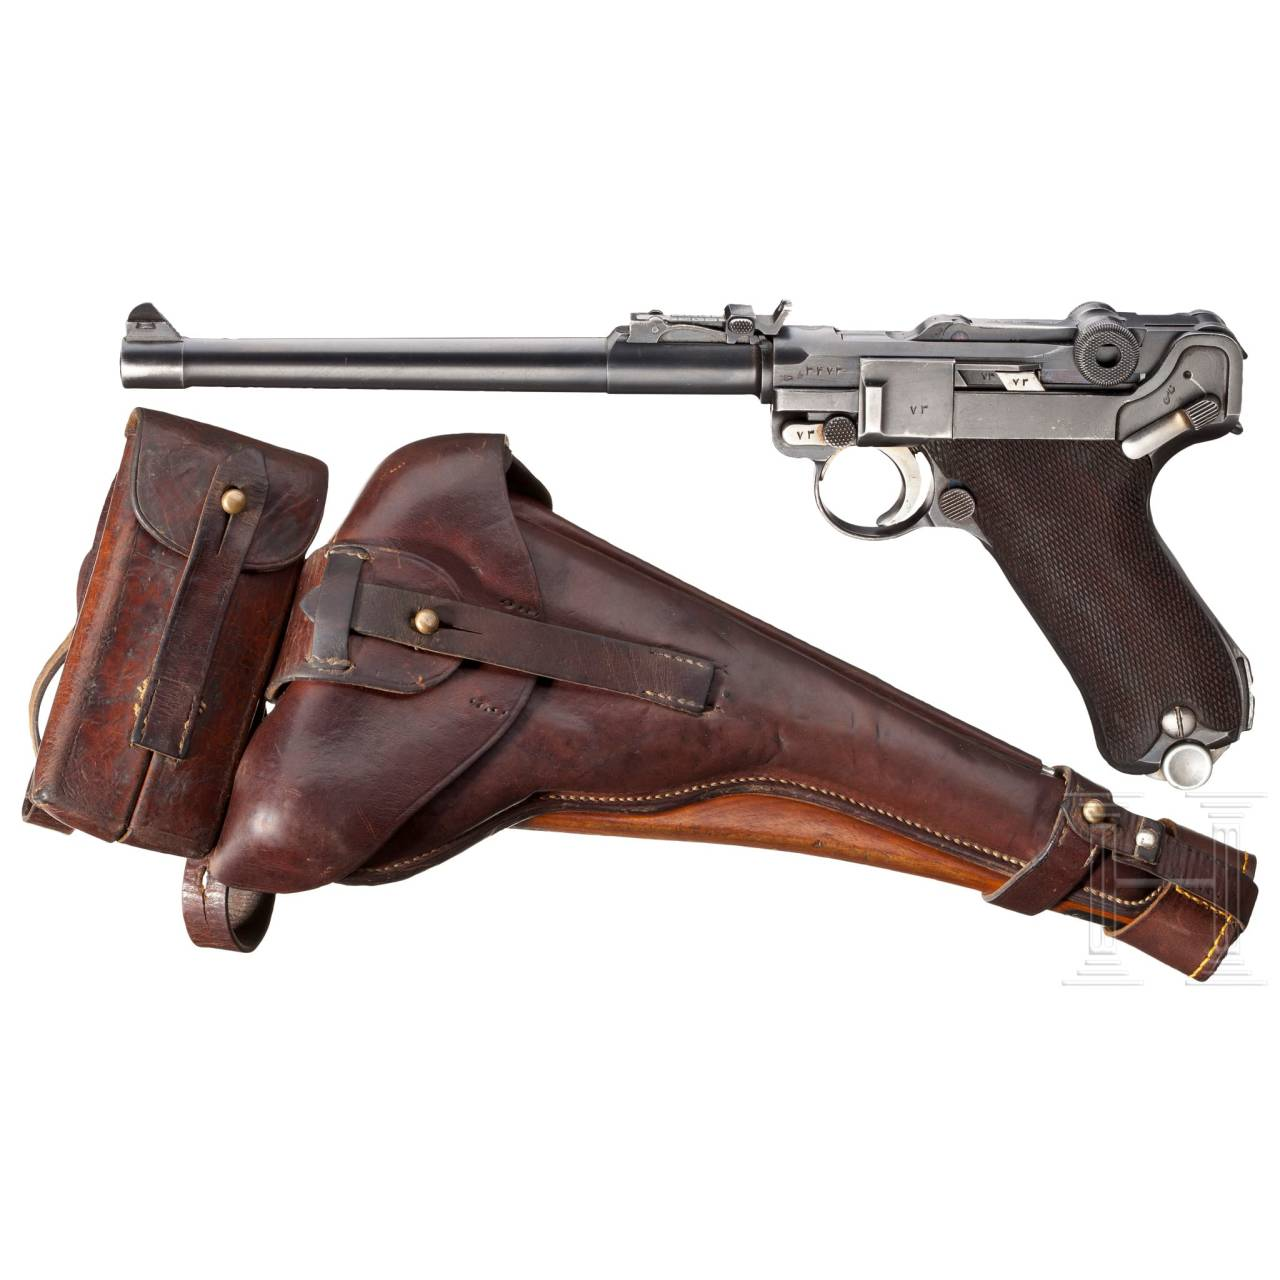 An Artillery Luger with Holster, double magazine pouch, shoulder stock